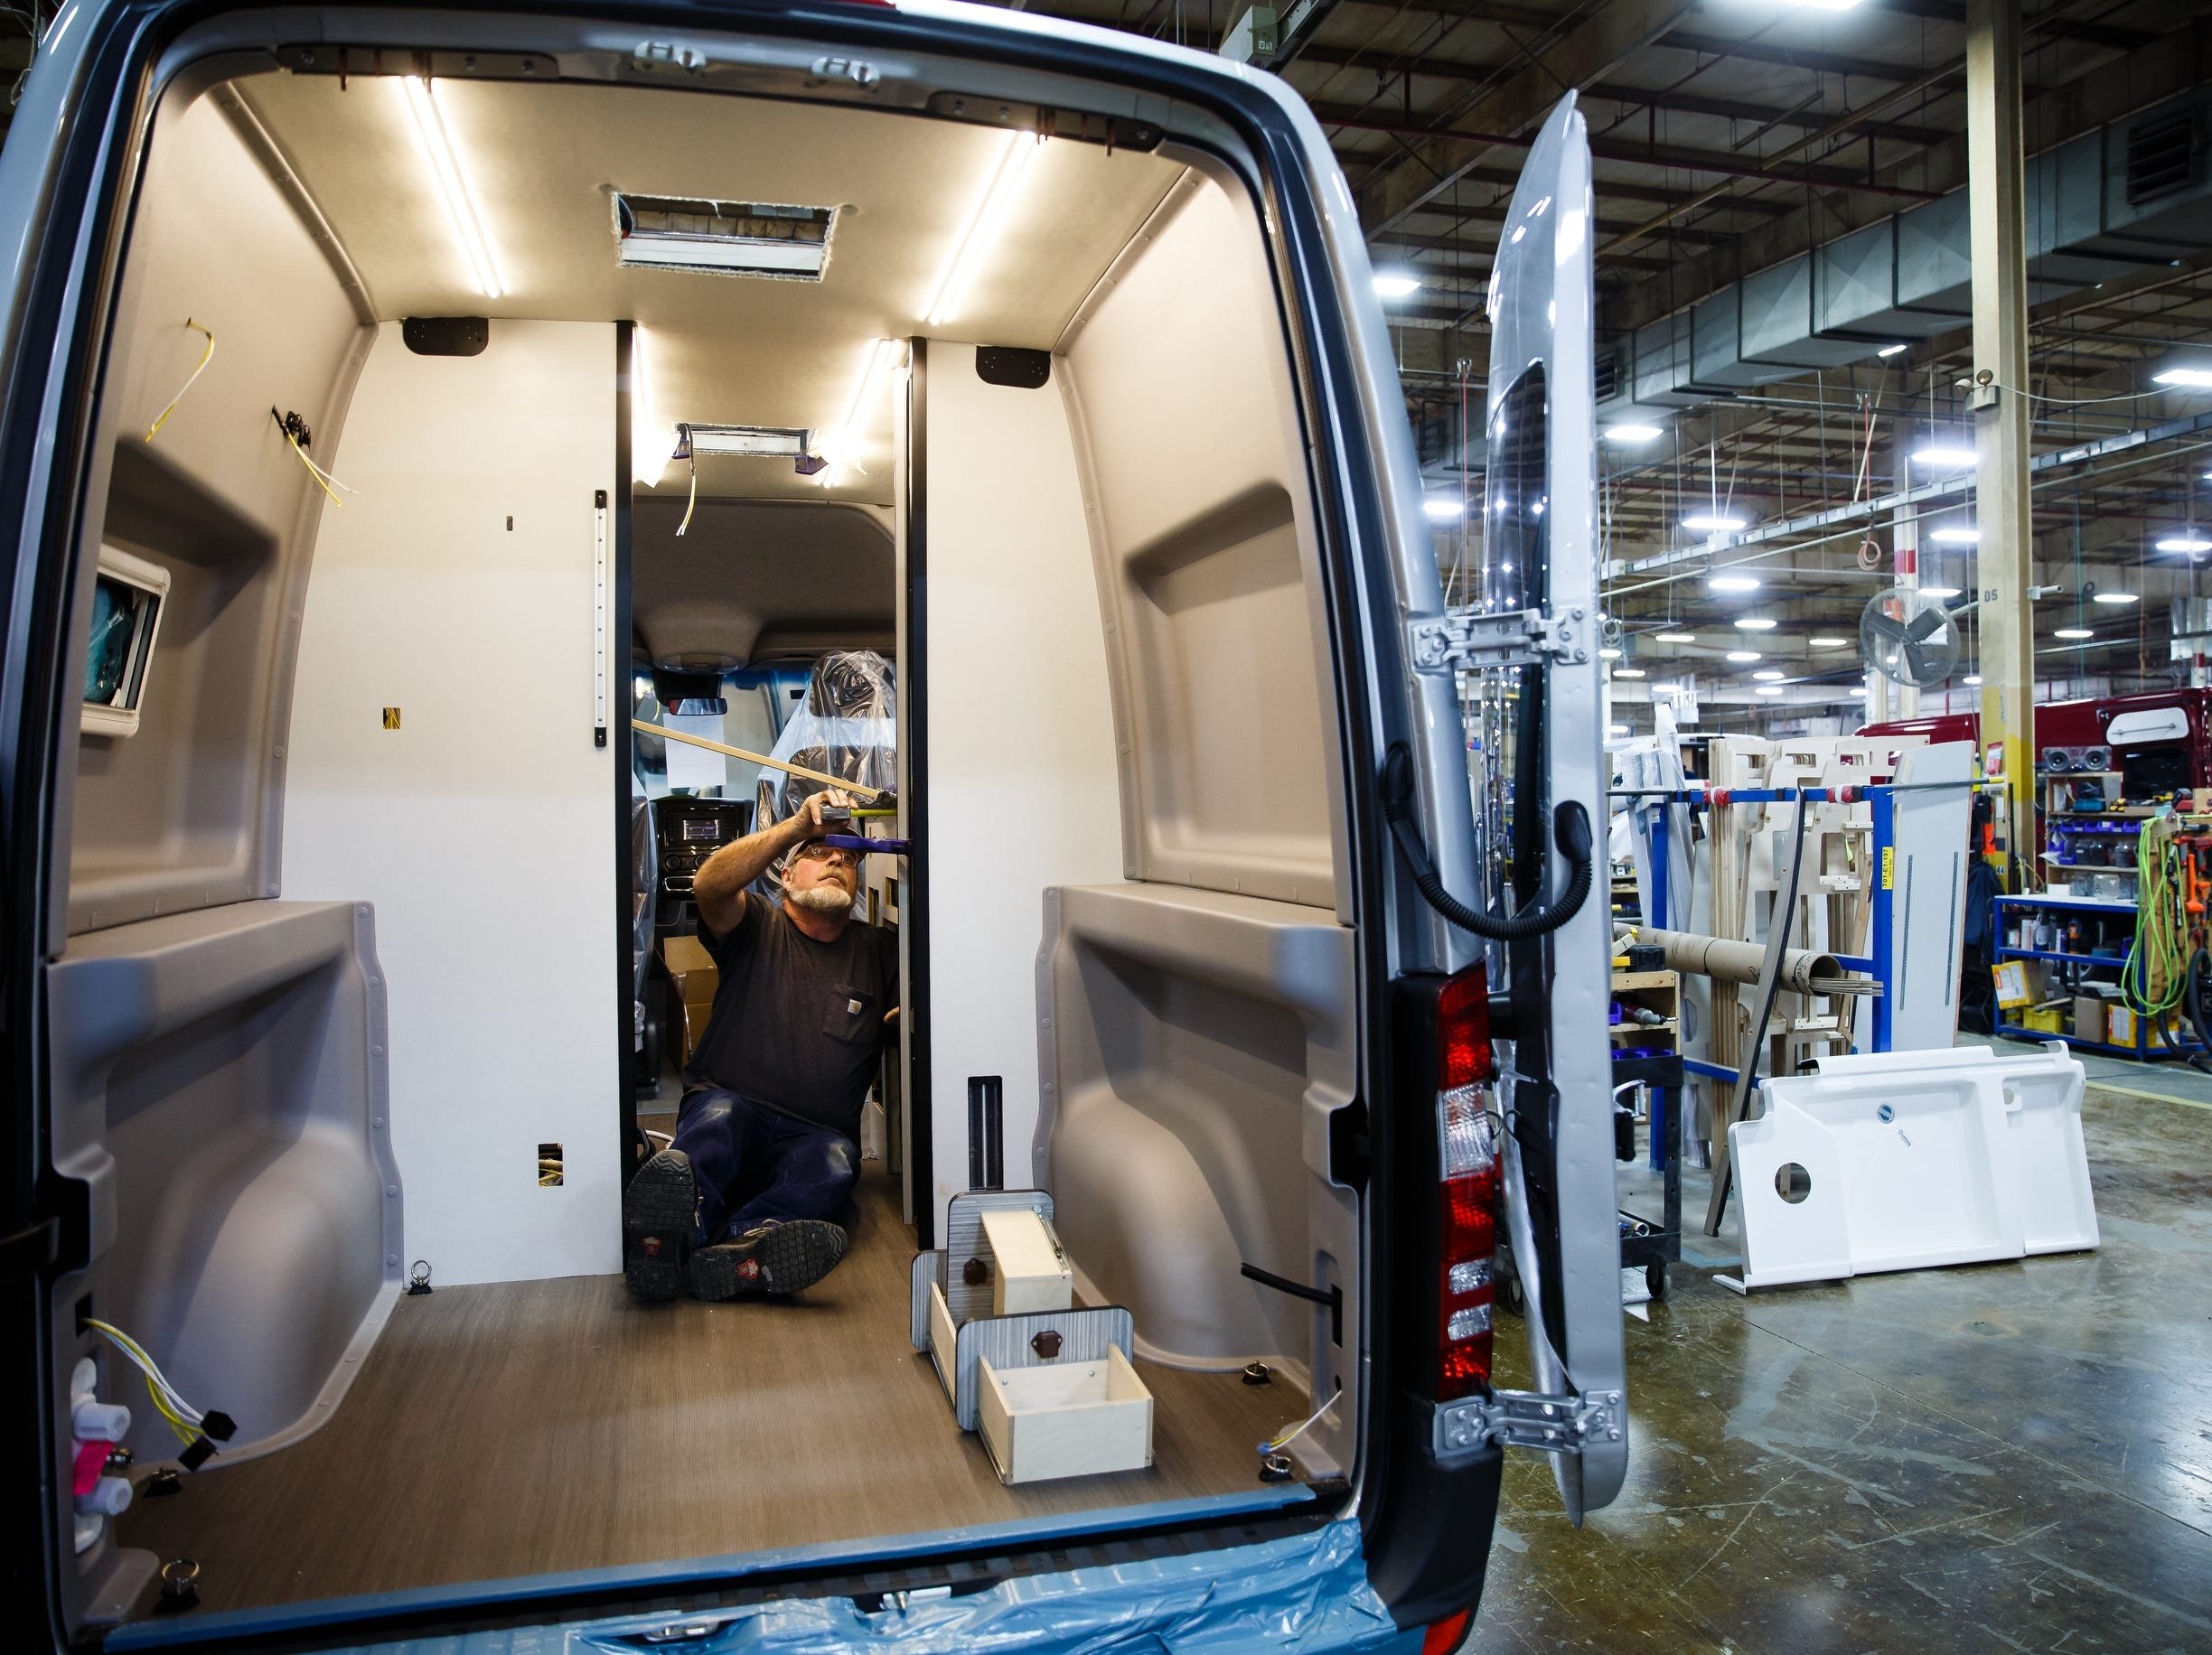 Workers install the kitchen cabinet on the Winnebago Revel at the companies Lake Mills factory on Wednesday, Dec. 5, 2018. The Revel, with its 4x4 and rugged nature has sparked the interest of outdoor enthusiasts and has helped the motor home manufacture rebound from poor sales during the recession.